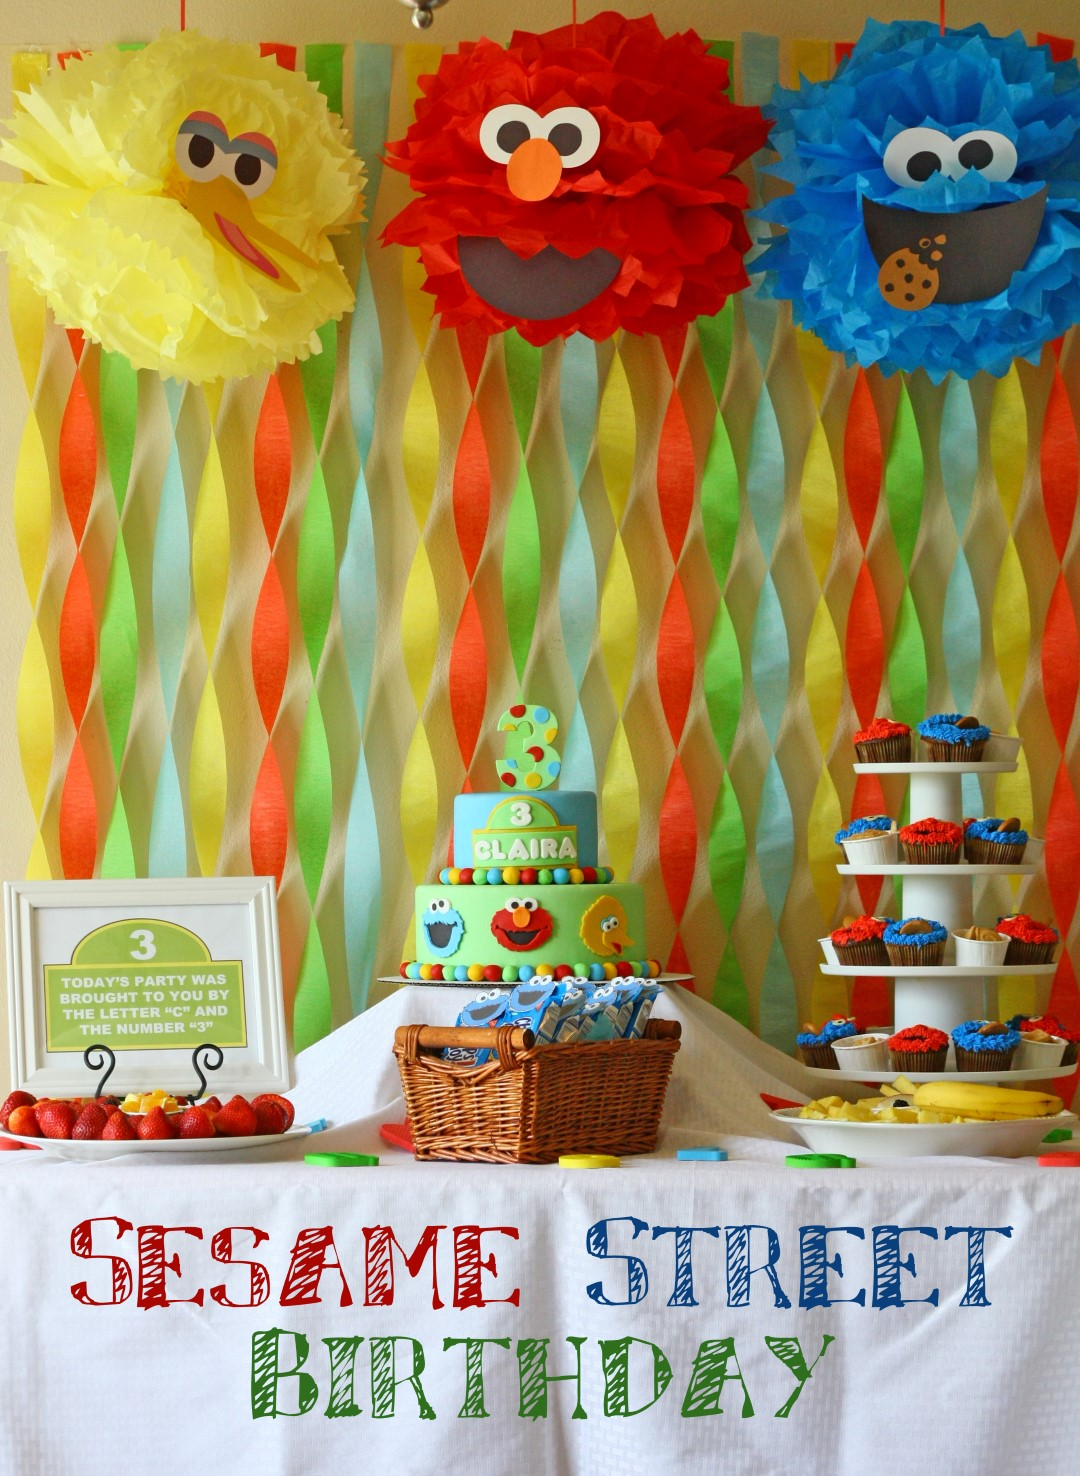 Patty Cakes Bakery Sesame Street Birthday Party